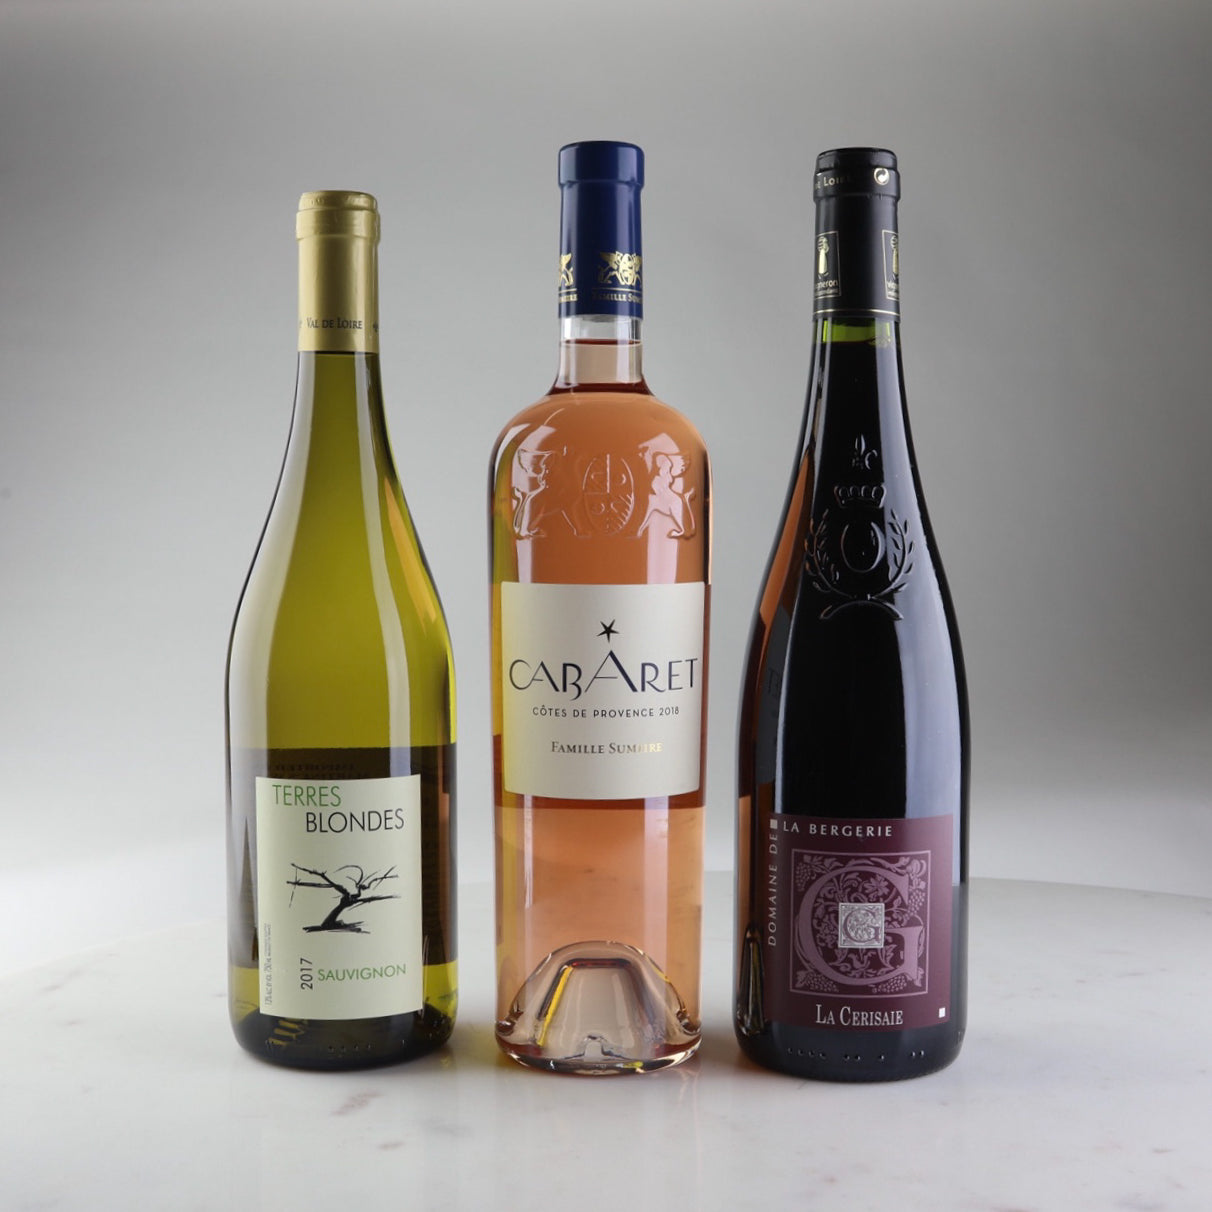 Case Made Wines, Wine delivery california, Terres Blondes Sauvignon Blanc 2017, Chateau Maupague Cotes de Provence Rose Cabaret 2018, Domaine de la Bergerie Anjou Rouge La Cerisaie 2018